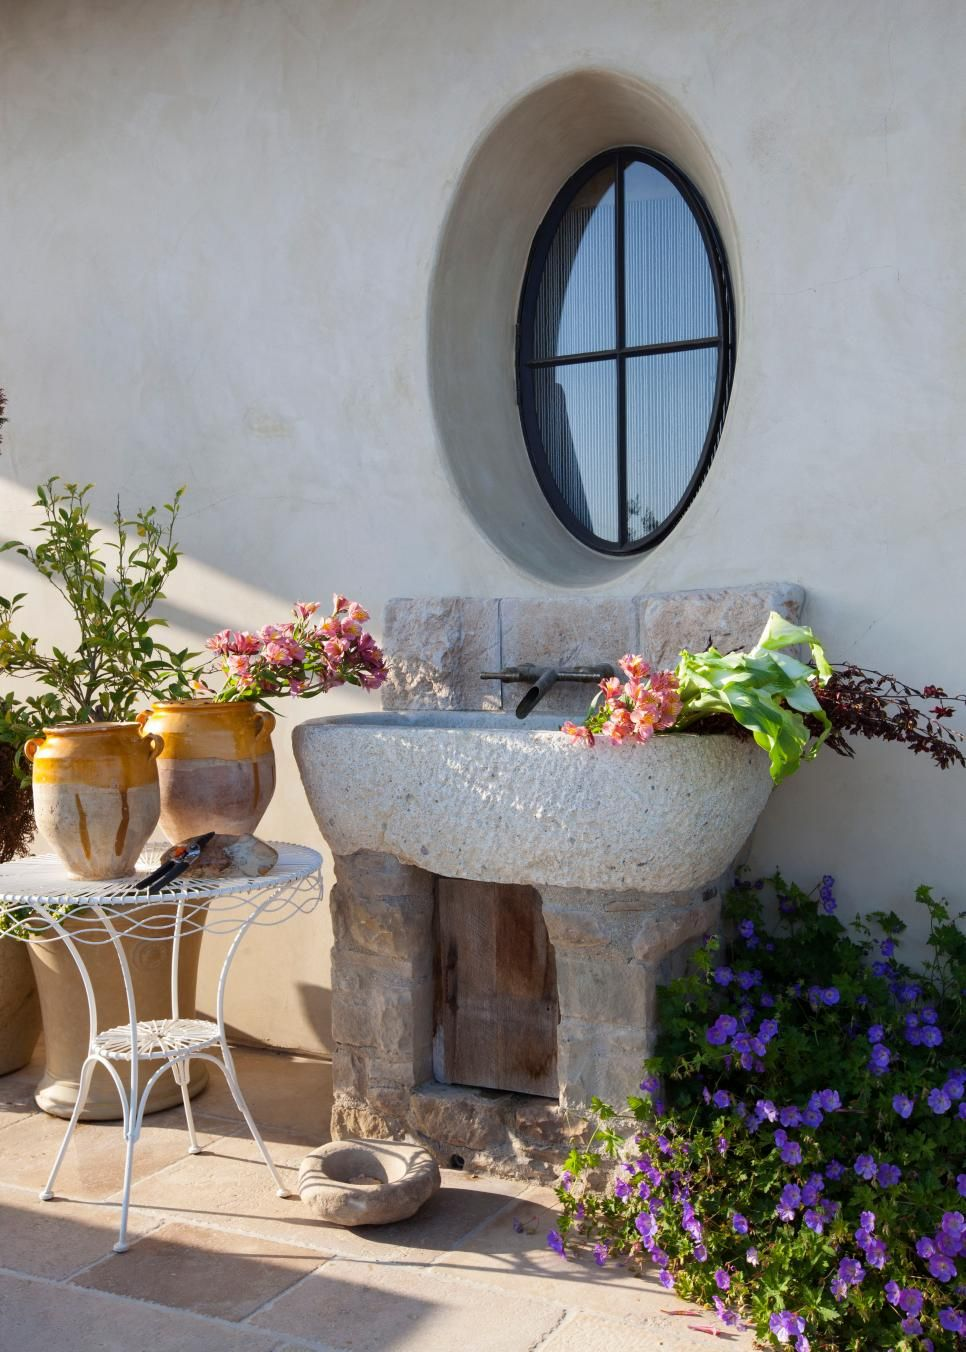 Beau This Rustic Stone Sink Near A Garden Is Built In An Asymmetrical Manner,  Making It Look Like An Element From A Centuries Old ...